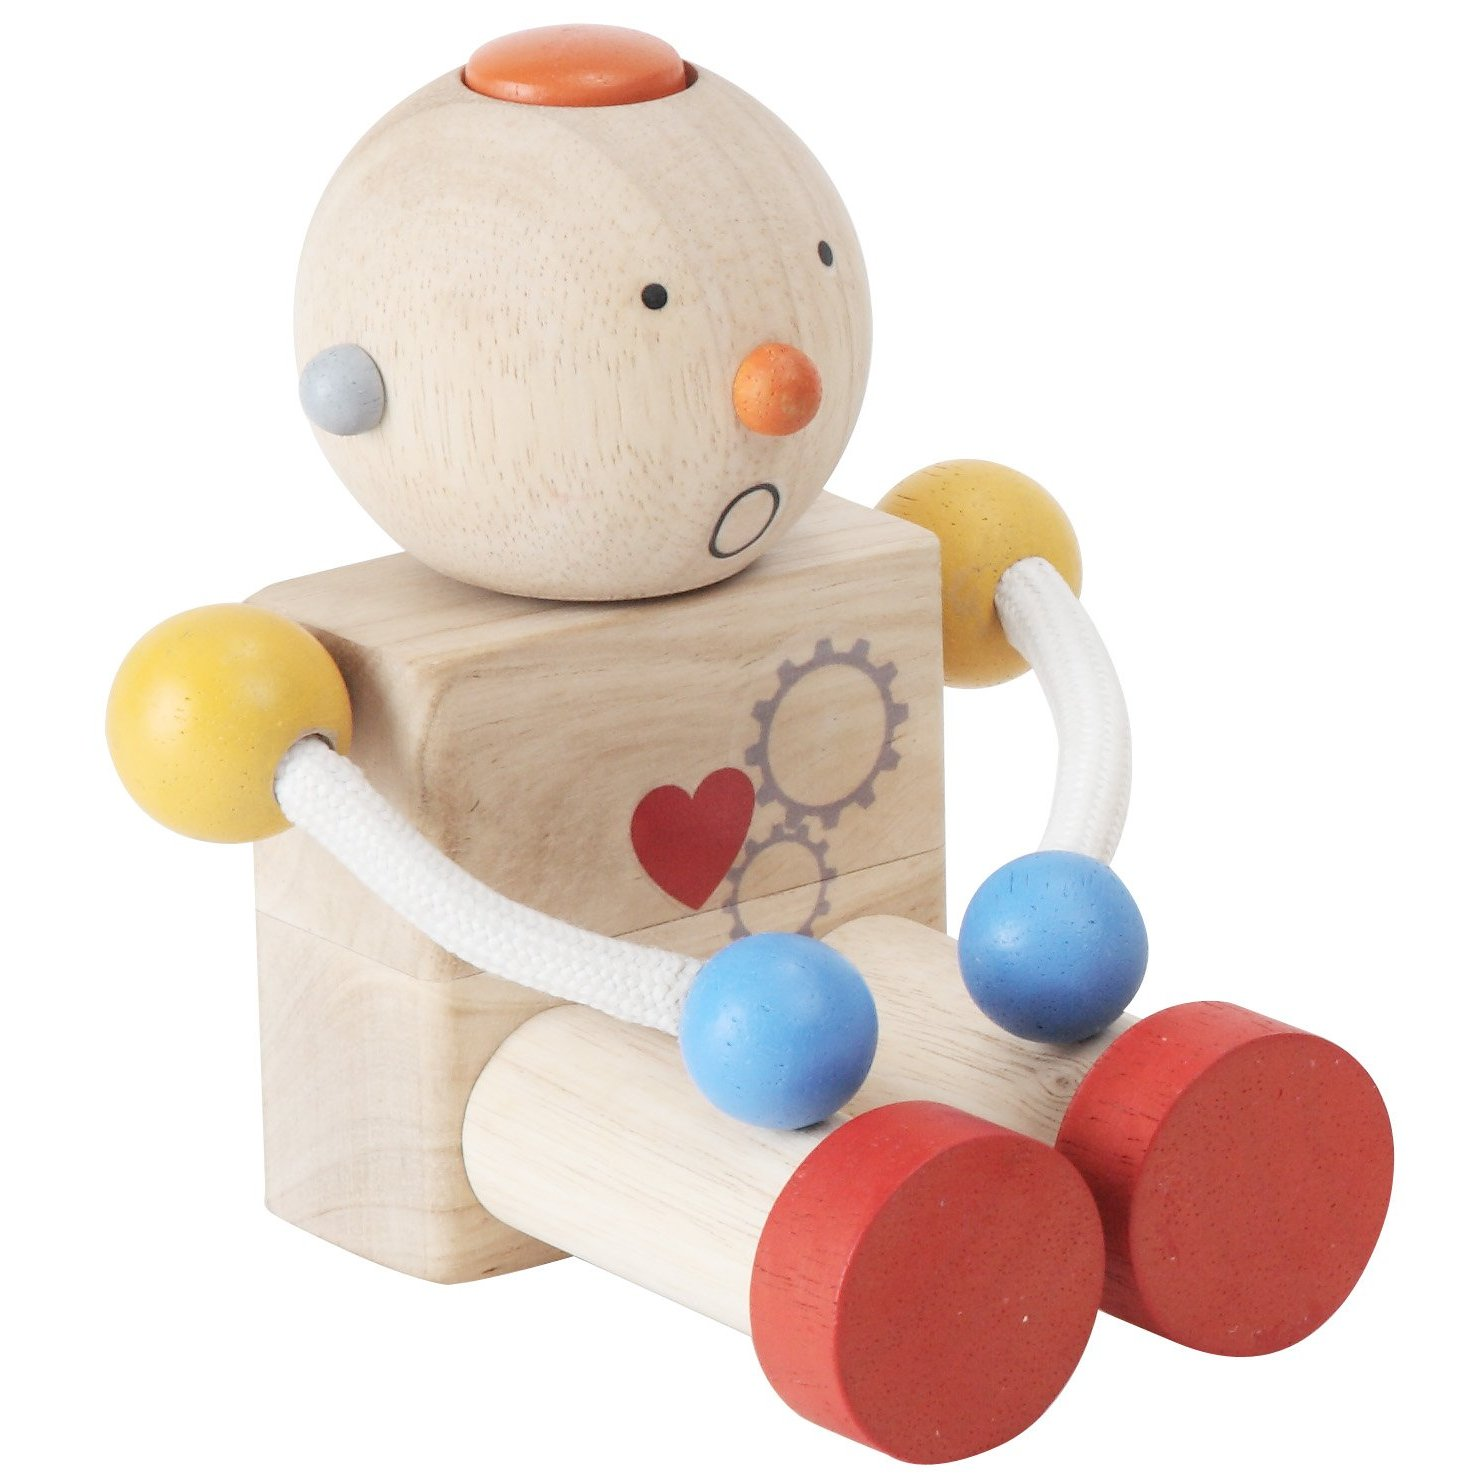 Toys For Toddlers With Autism : Autism toy is one of s best toys